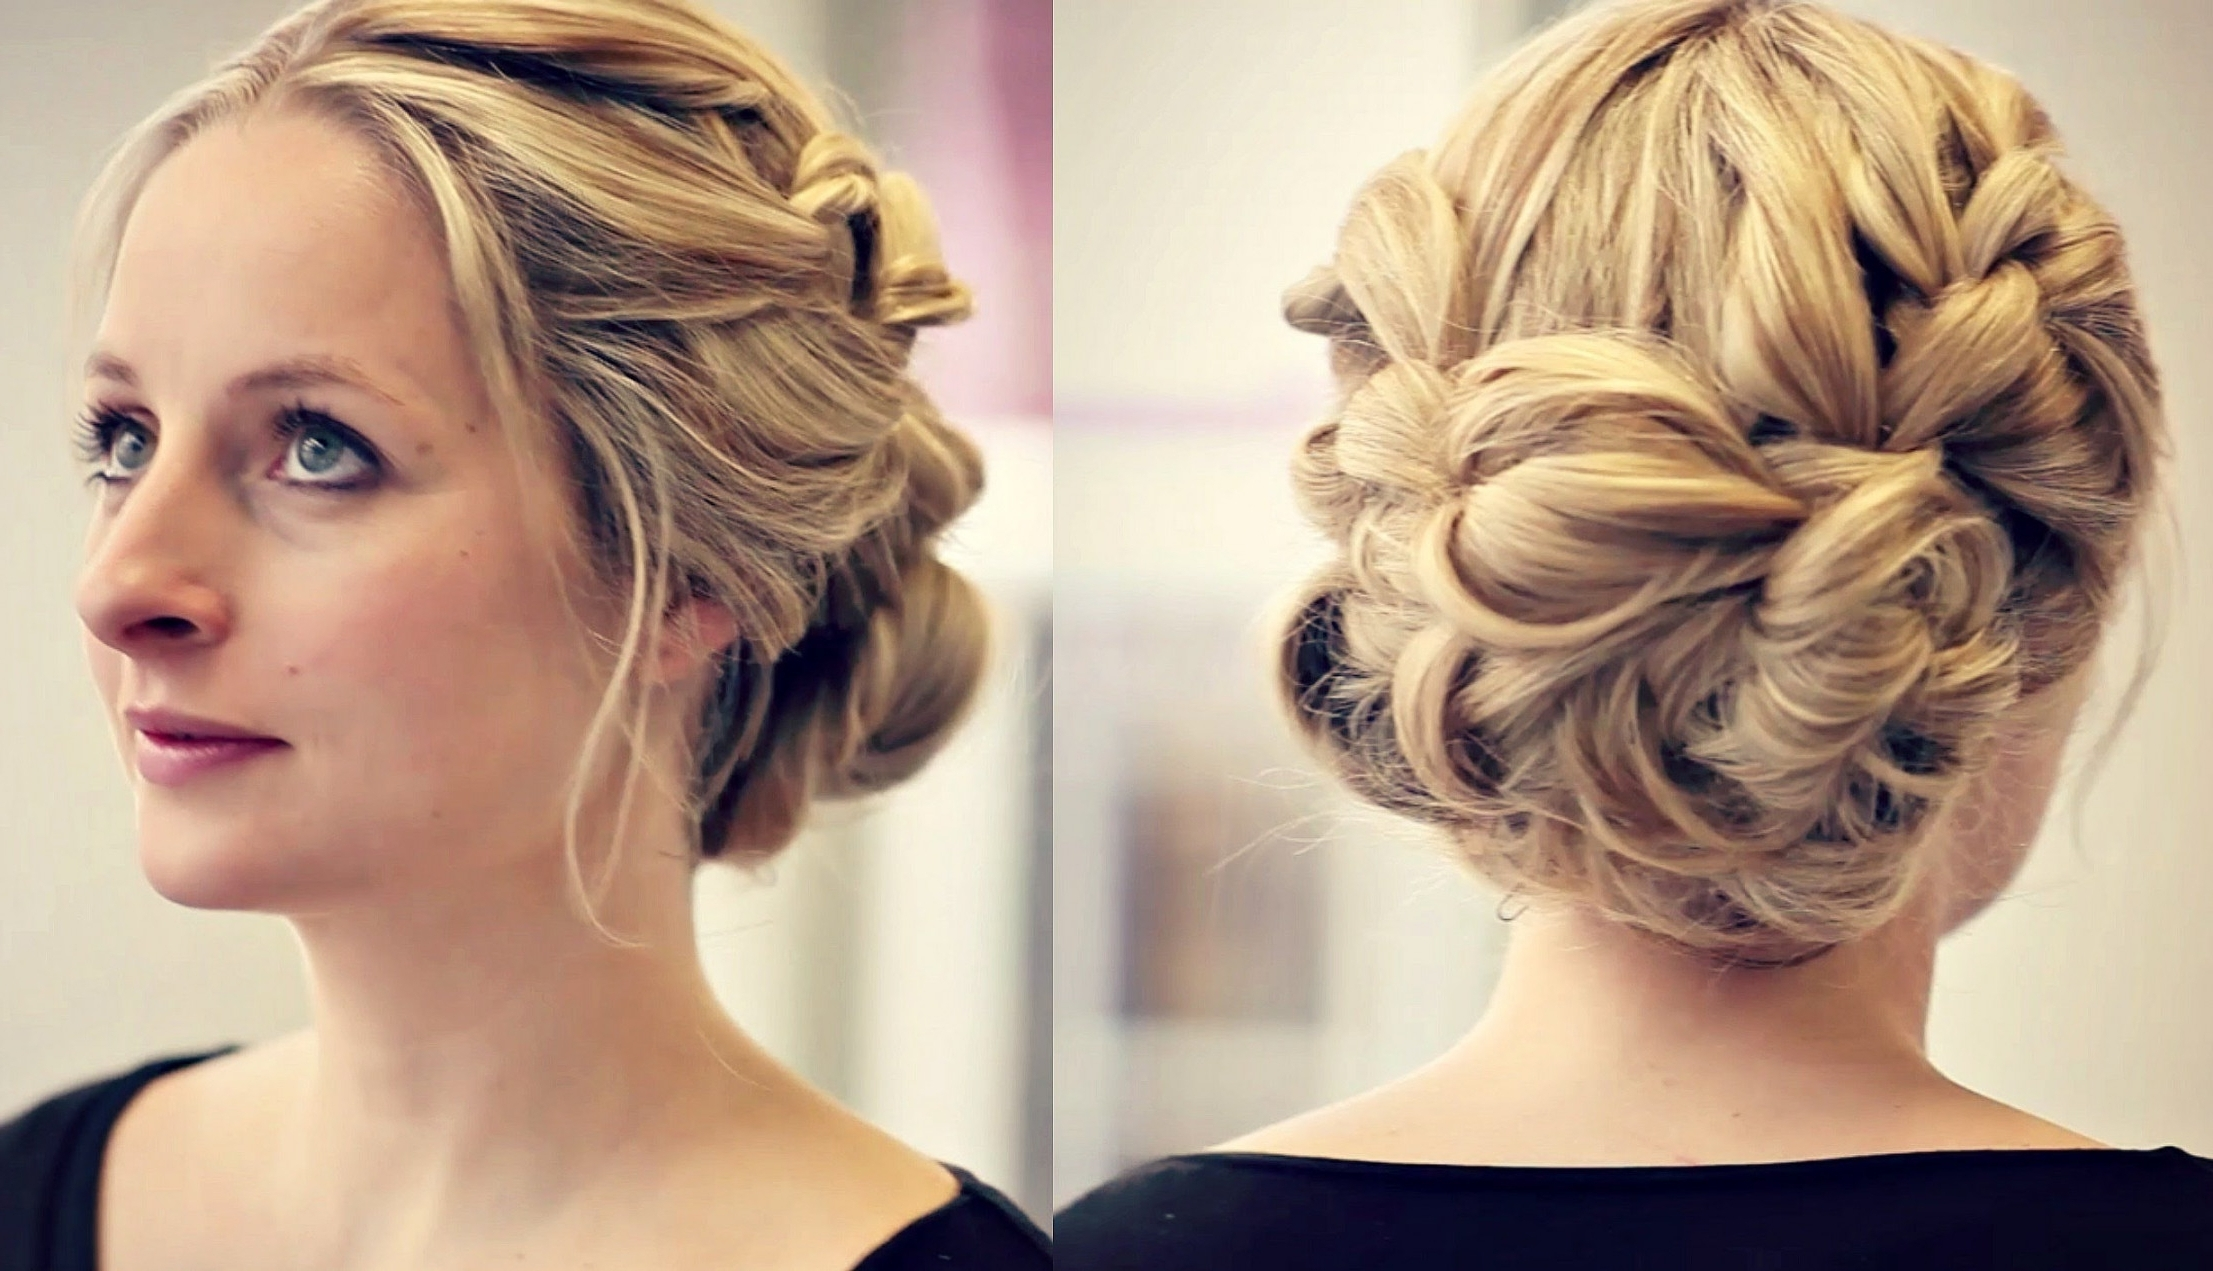 Hairstyles Bridesmaid Bridesmaid Hair Tutorial The Perfect Updo With Regard To Hairstyles For Bridesmaids Updos (View 3 of 15)